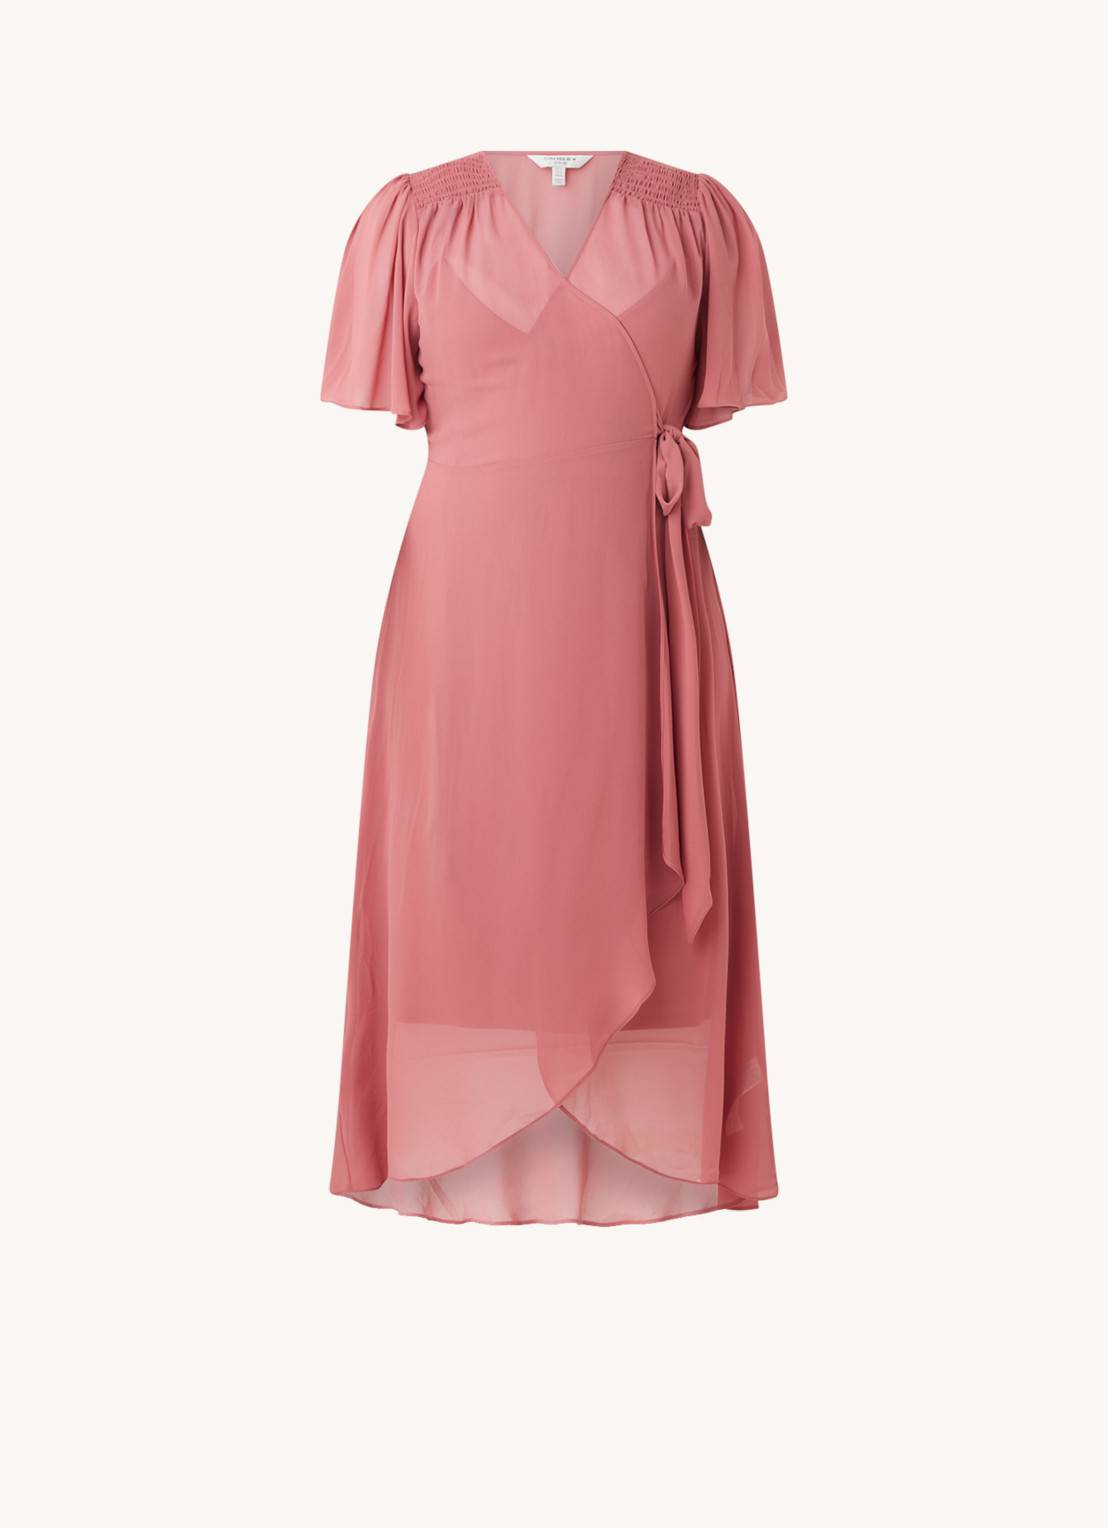 forever new Robe portefeuille Emmaline fluide semi-transparente - Rose saumon